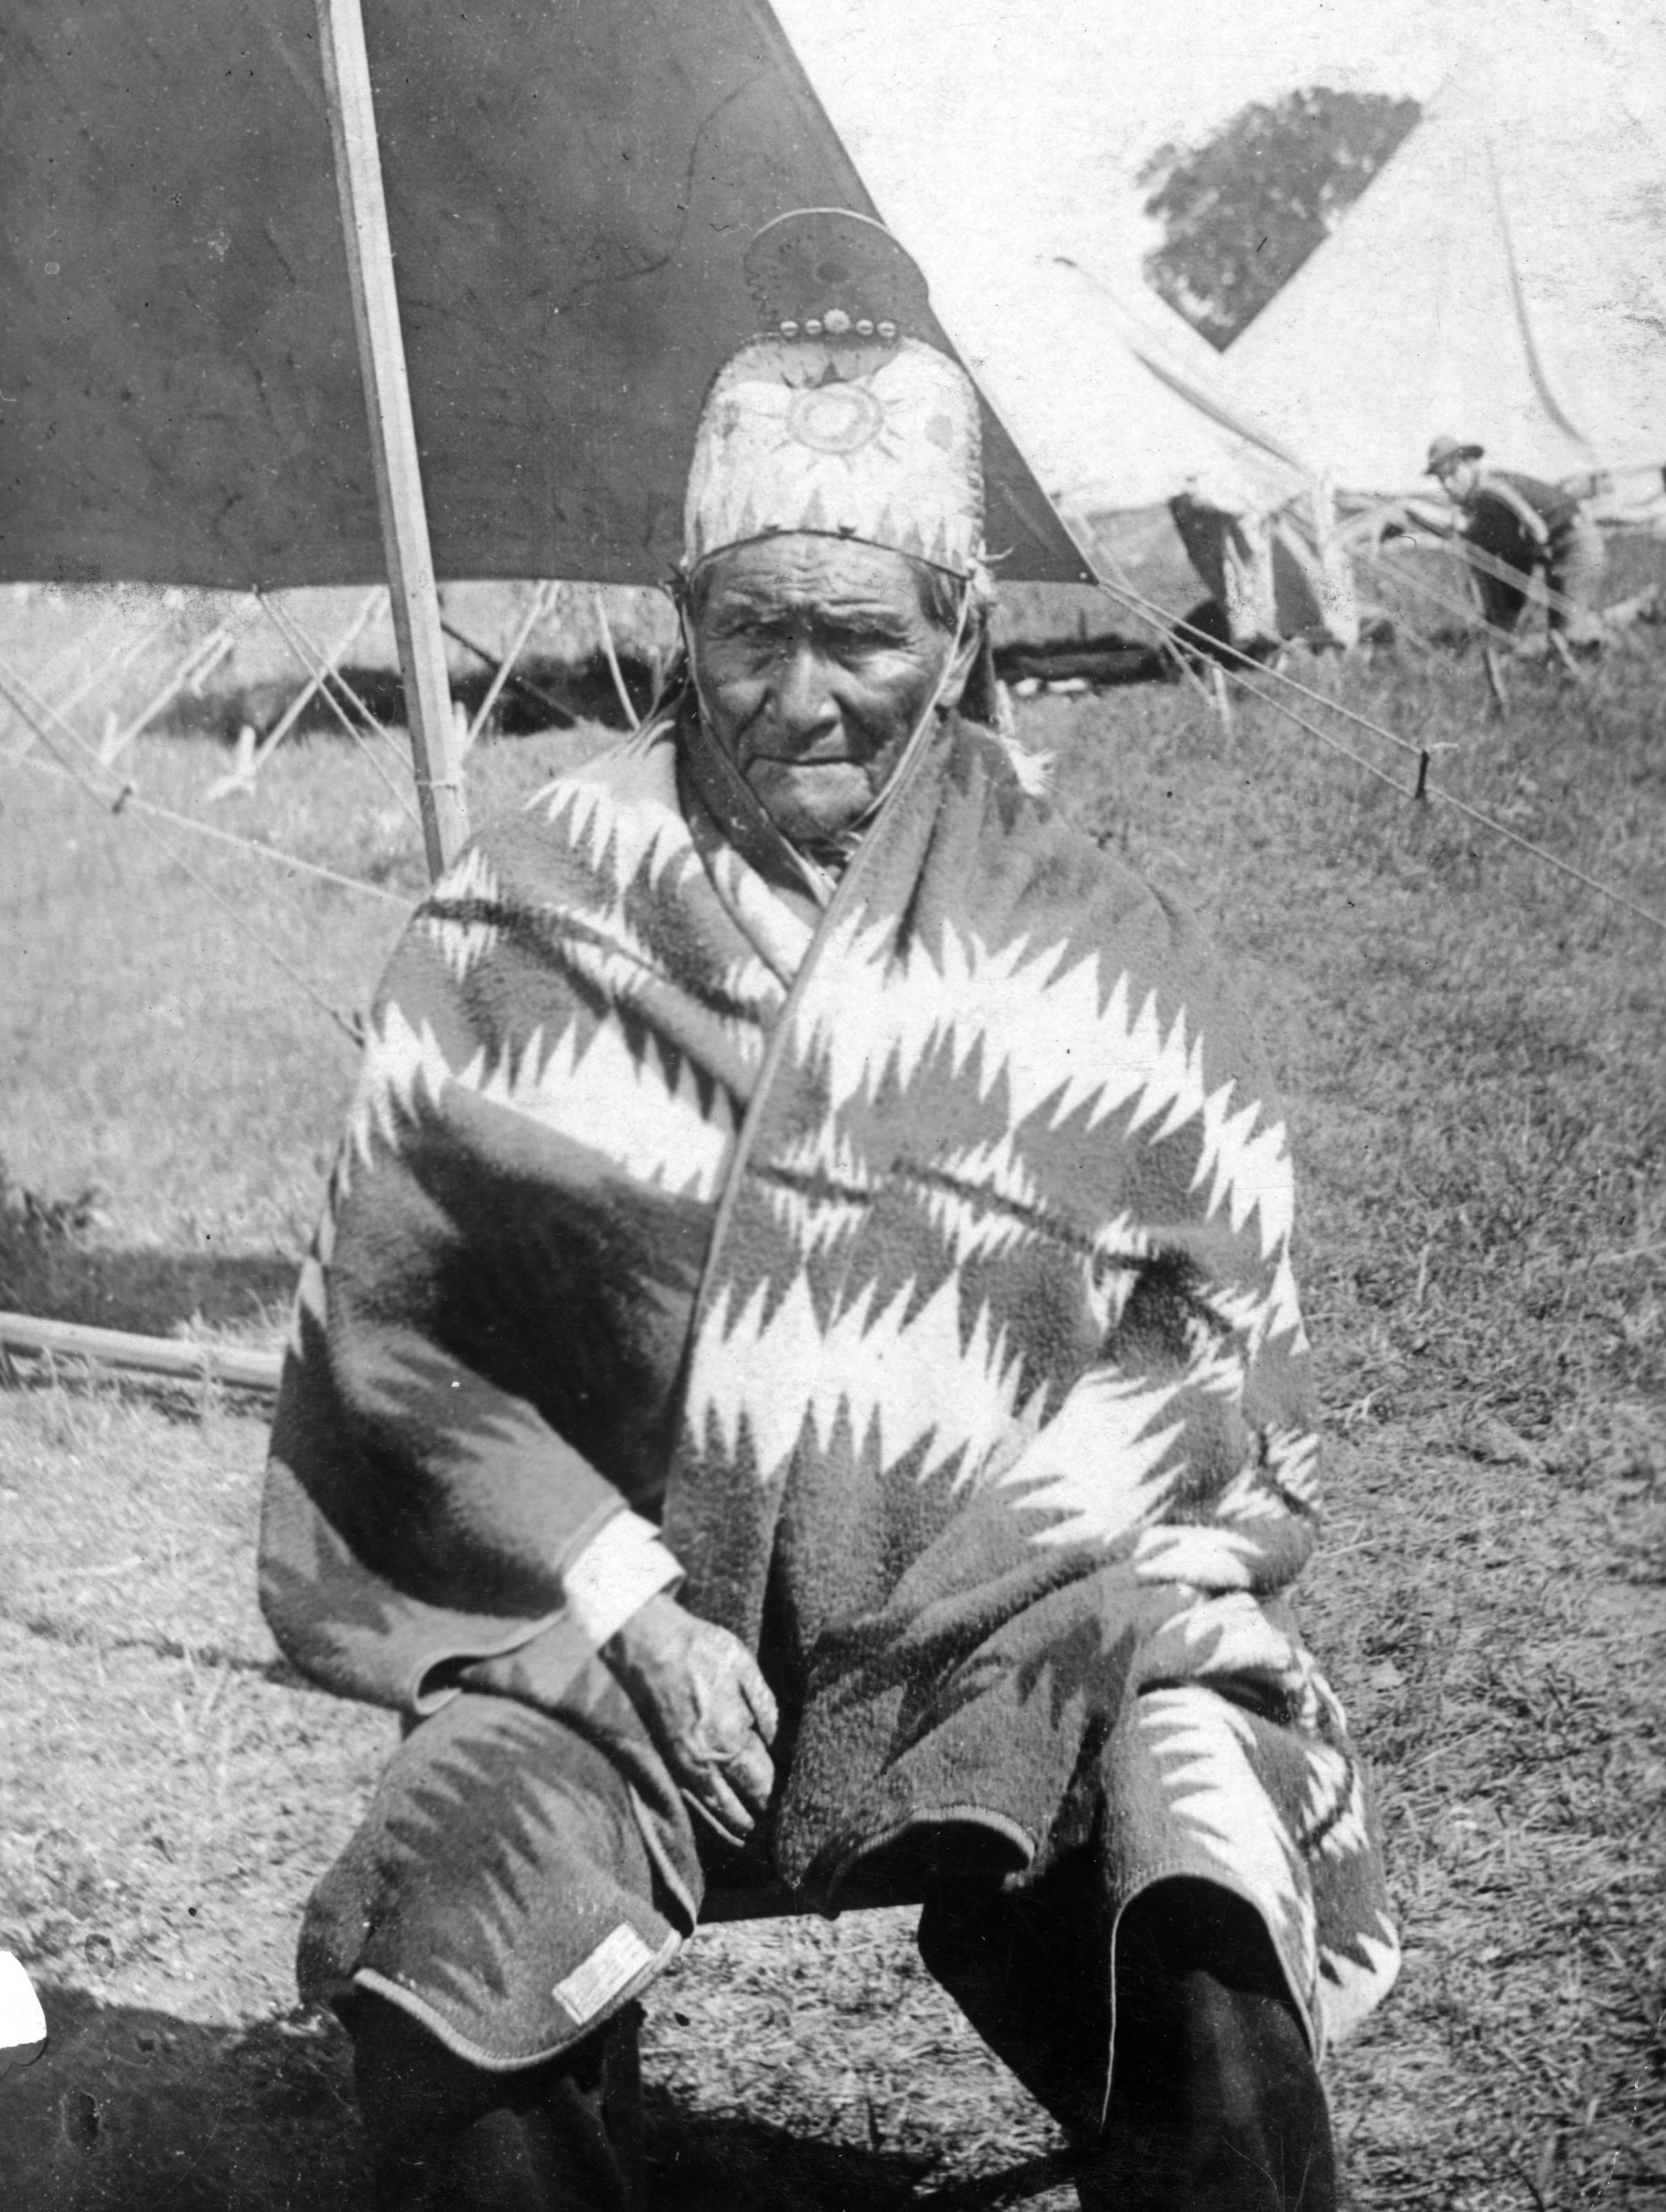 http://upload.wikimedia.org/wikipedia/commons/3/36/Geronimo%2C_as_US_prisoner.jpg